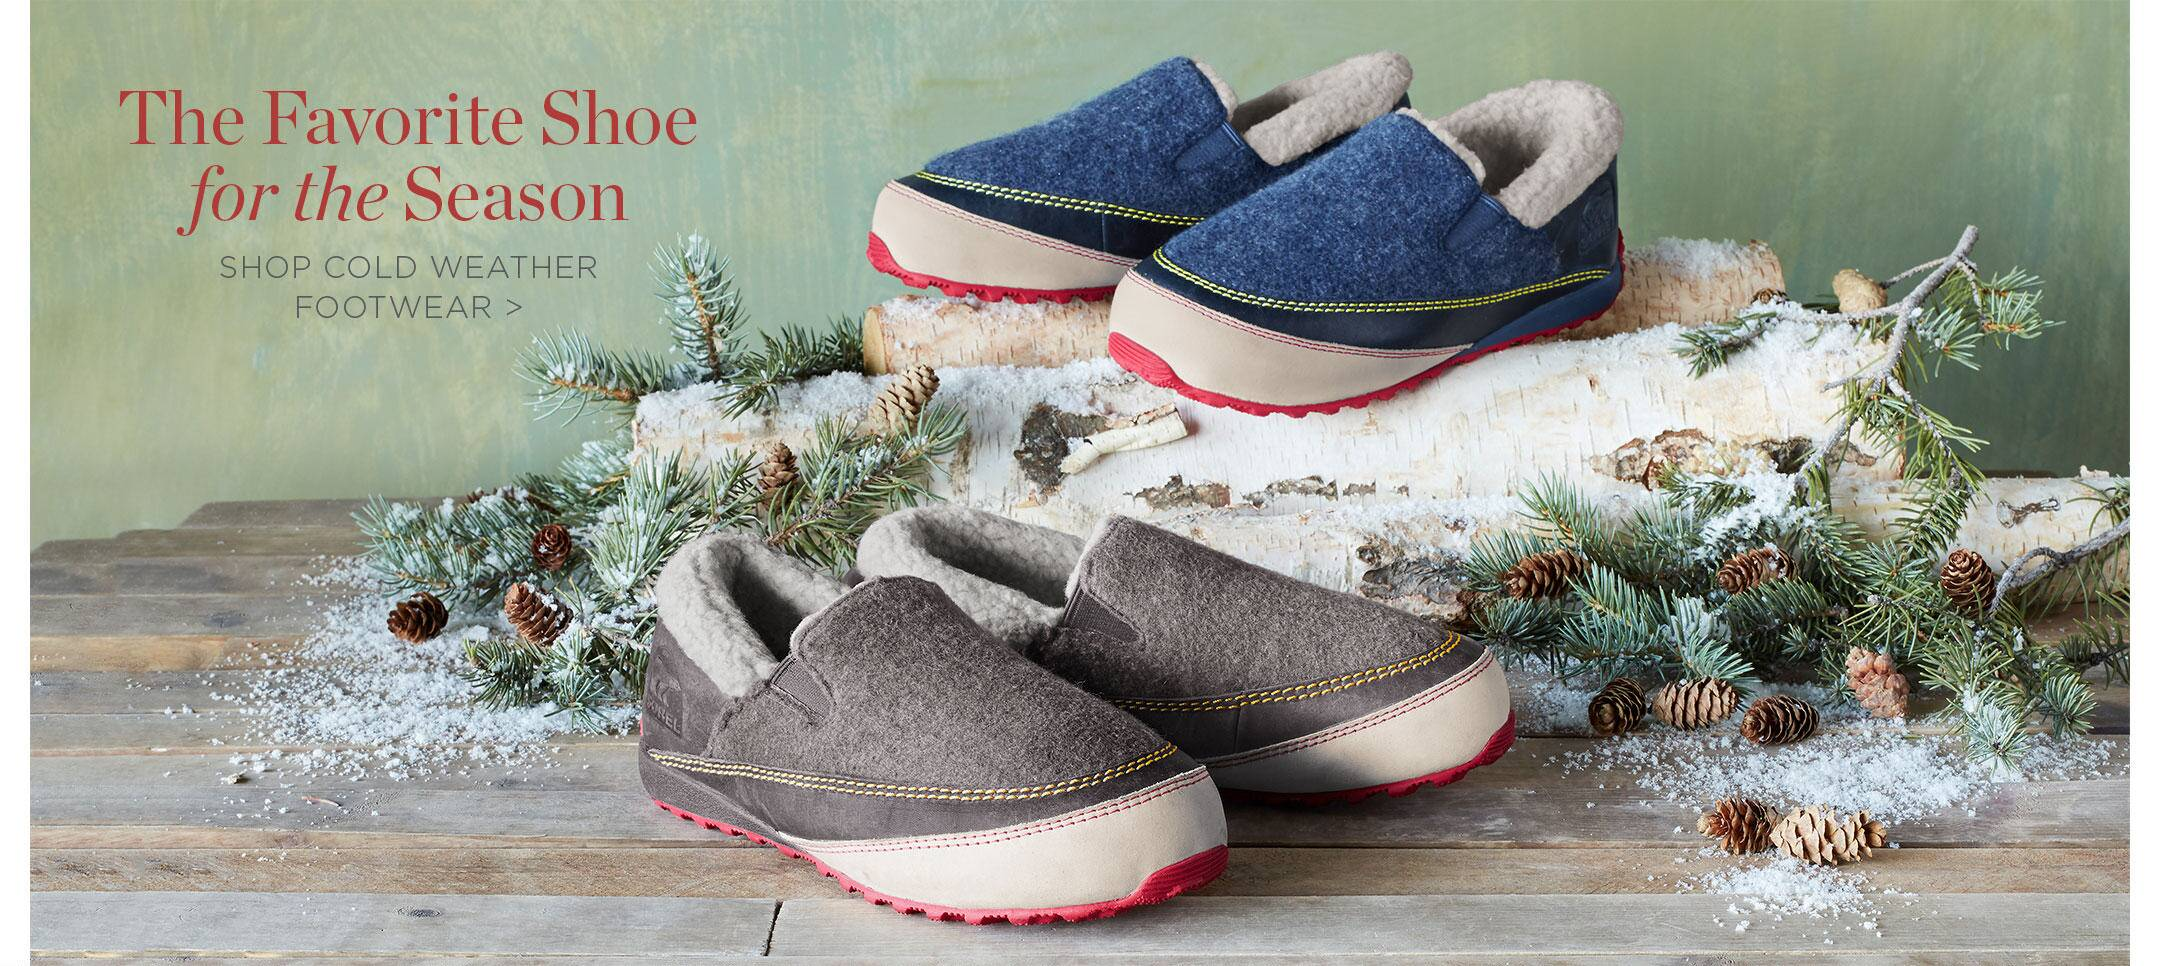 Shop Cold Weather Footwear